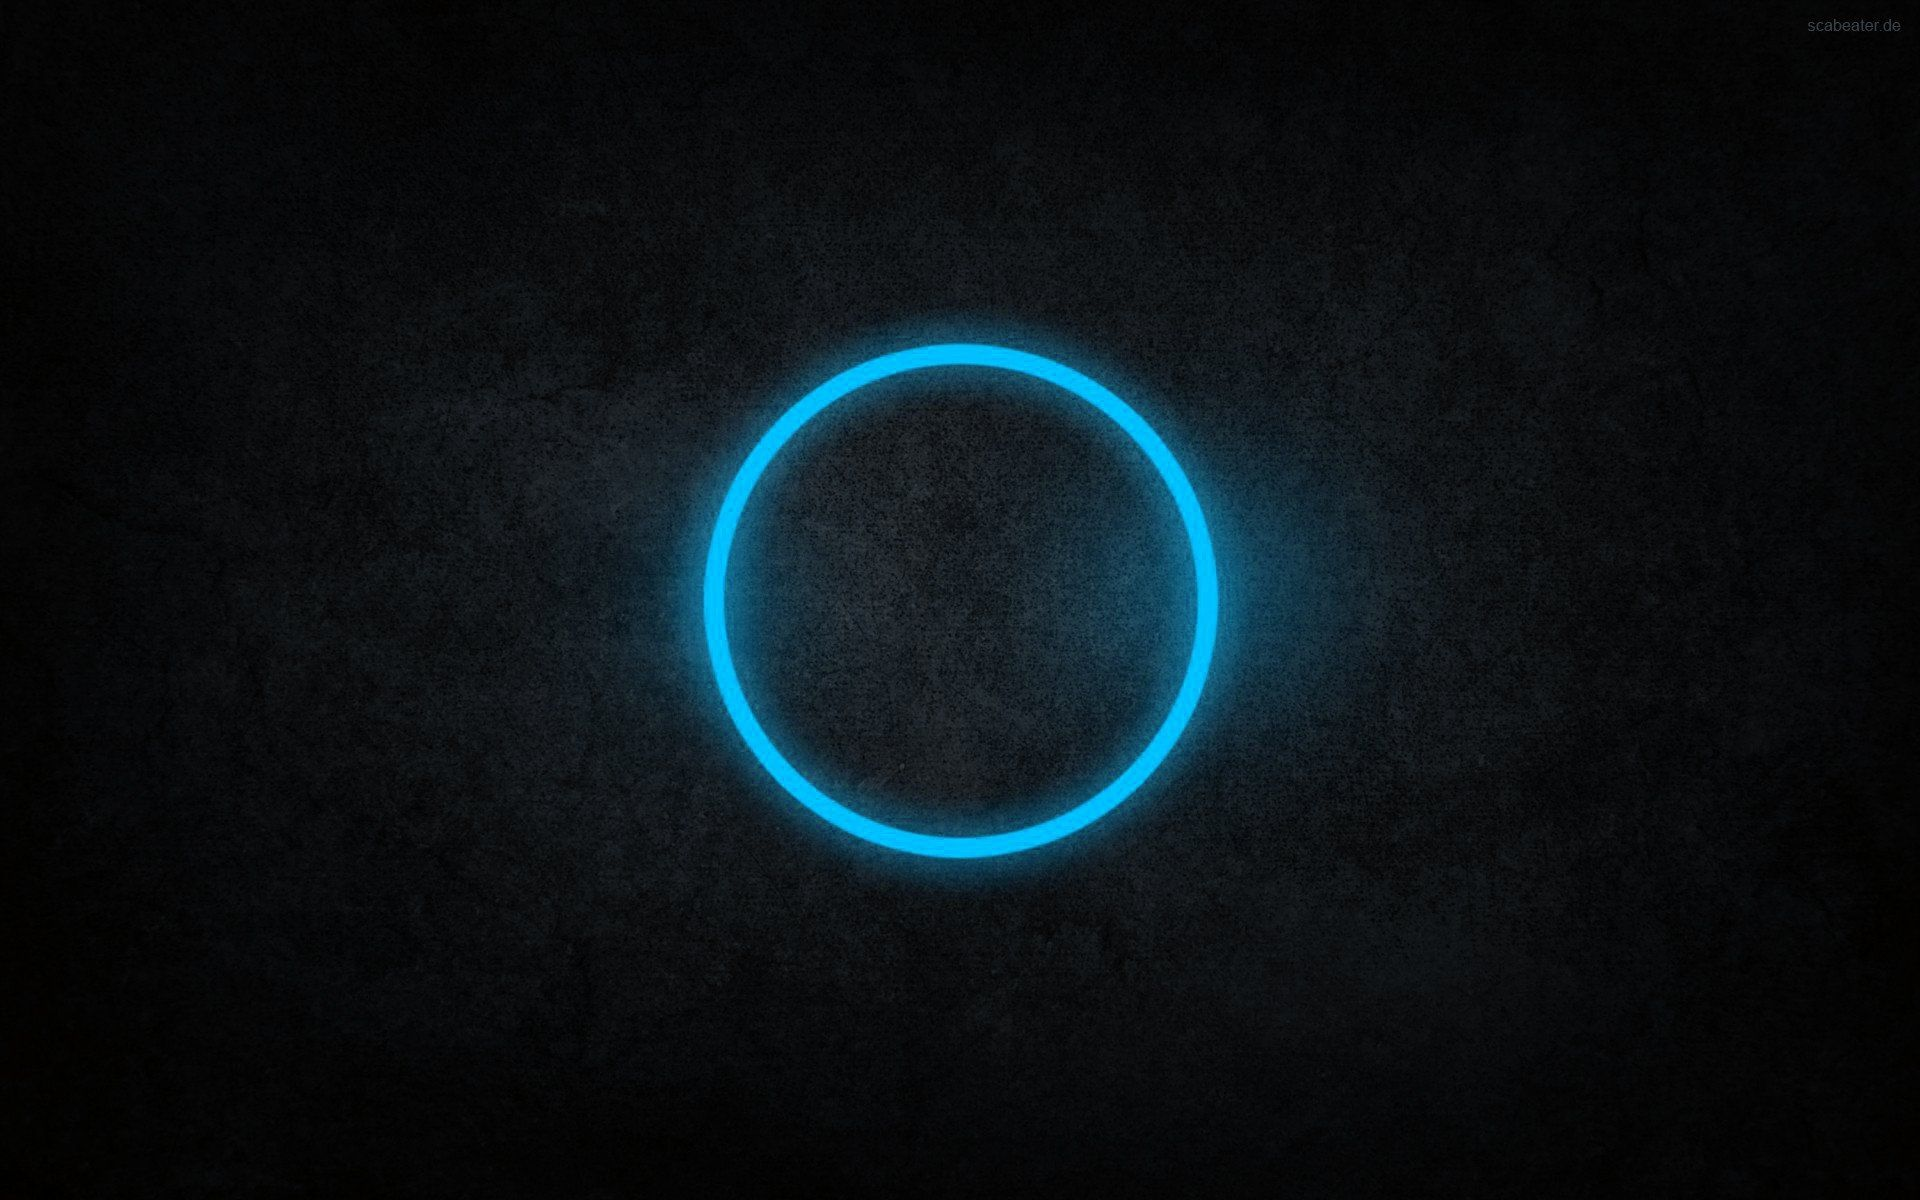 148 Circle HD Wallpapers | Backgrounds - Wallpaper Abyss